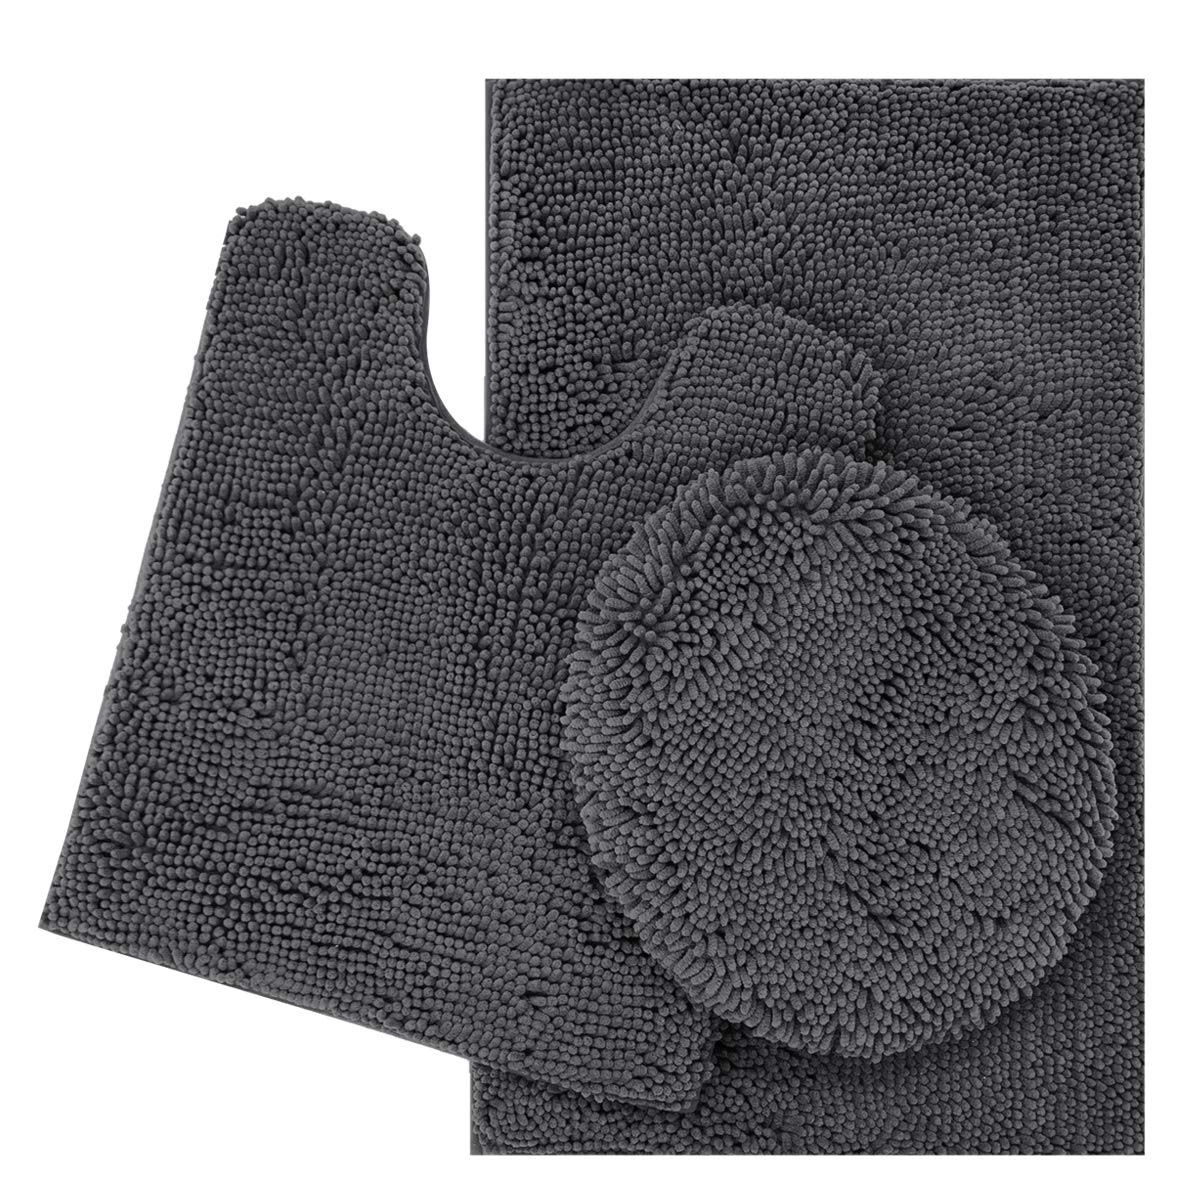 ITSOFT 3pc Non-Slip Shaggy Chenille Bathroom Mat Set, Includes U-Shaped Contour Toilet Mat, Bath Mat and Toilet Lid Cover, Machine Washable, Charcoal Gray by ITSOFT